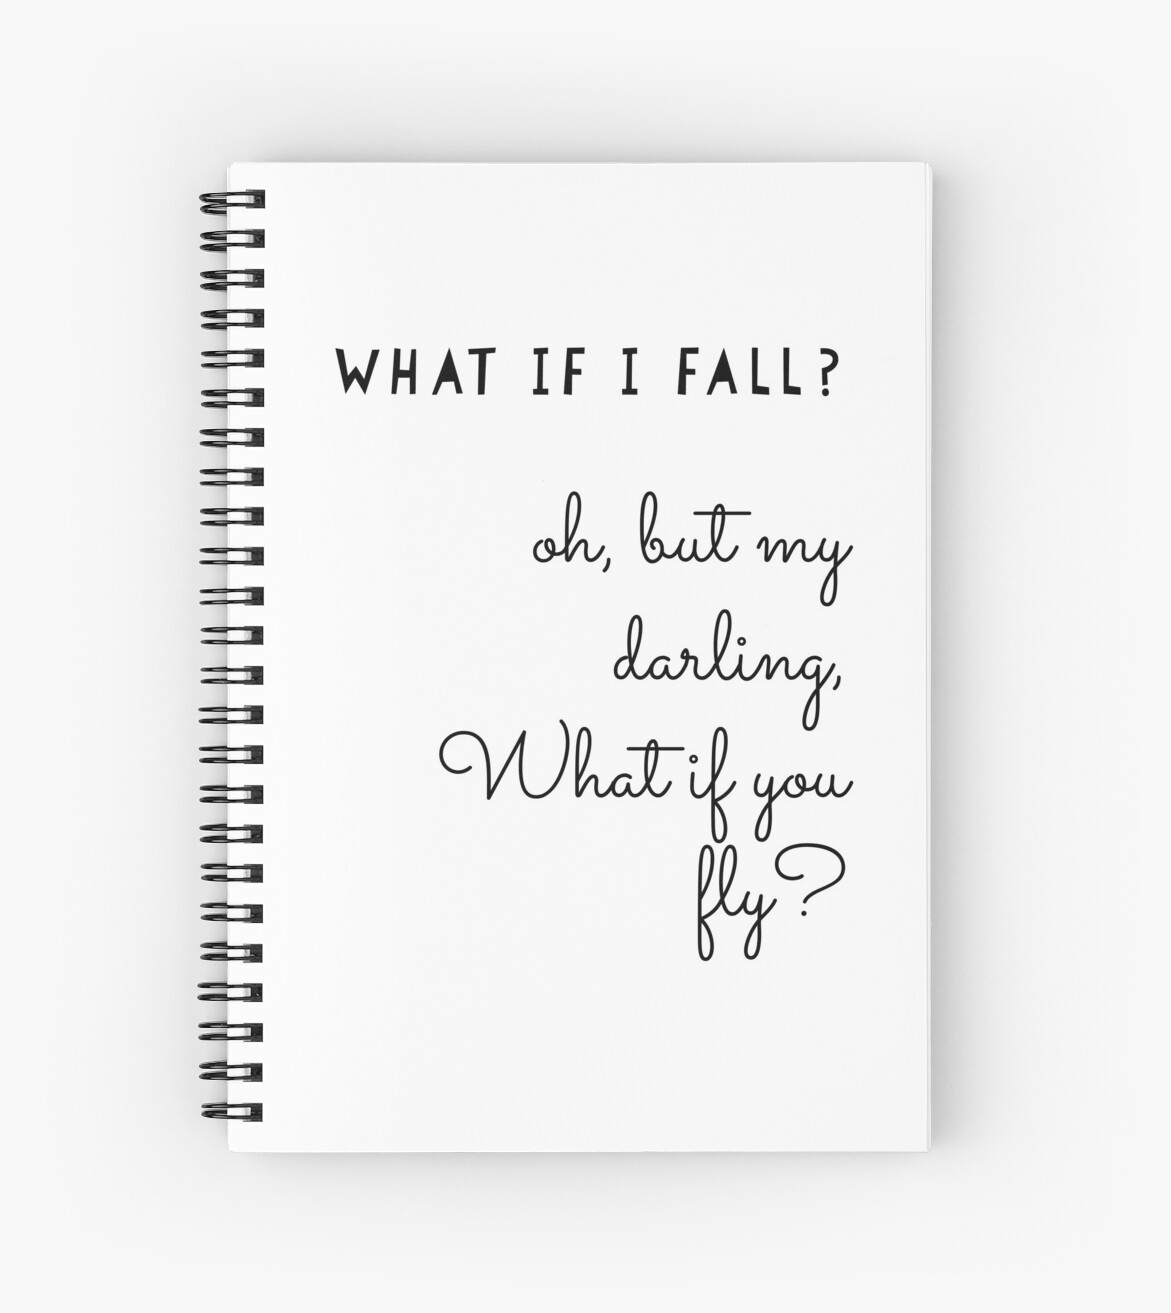 What If I Fall Quote Monochrome Spiral Notebooks By Theperkypanda